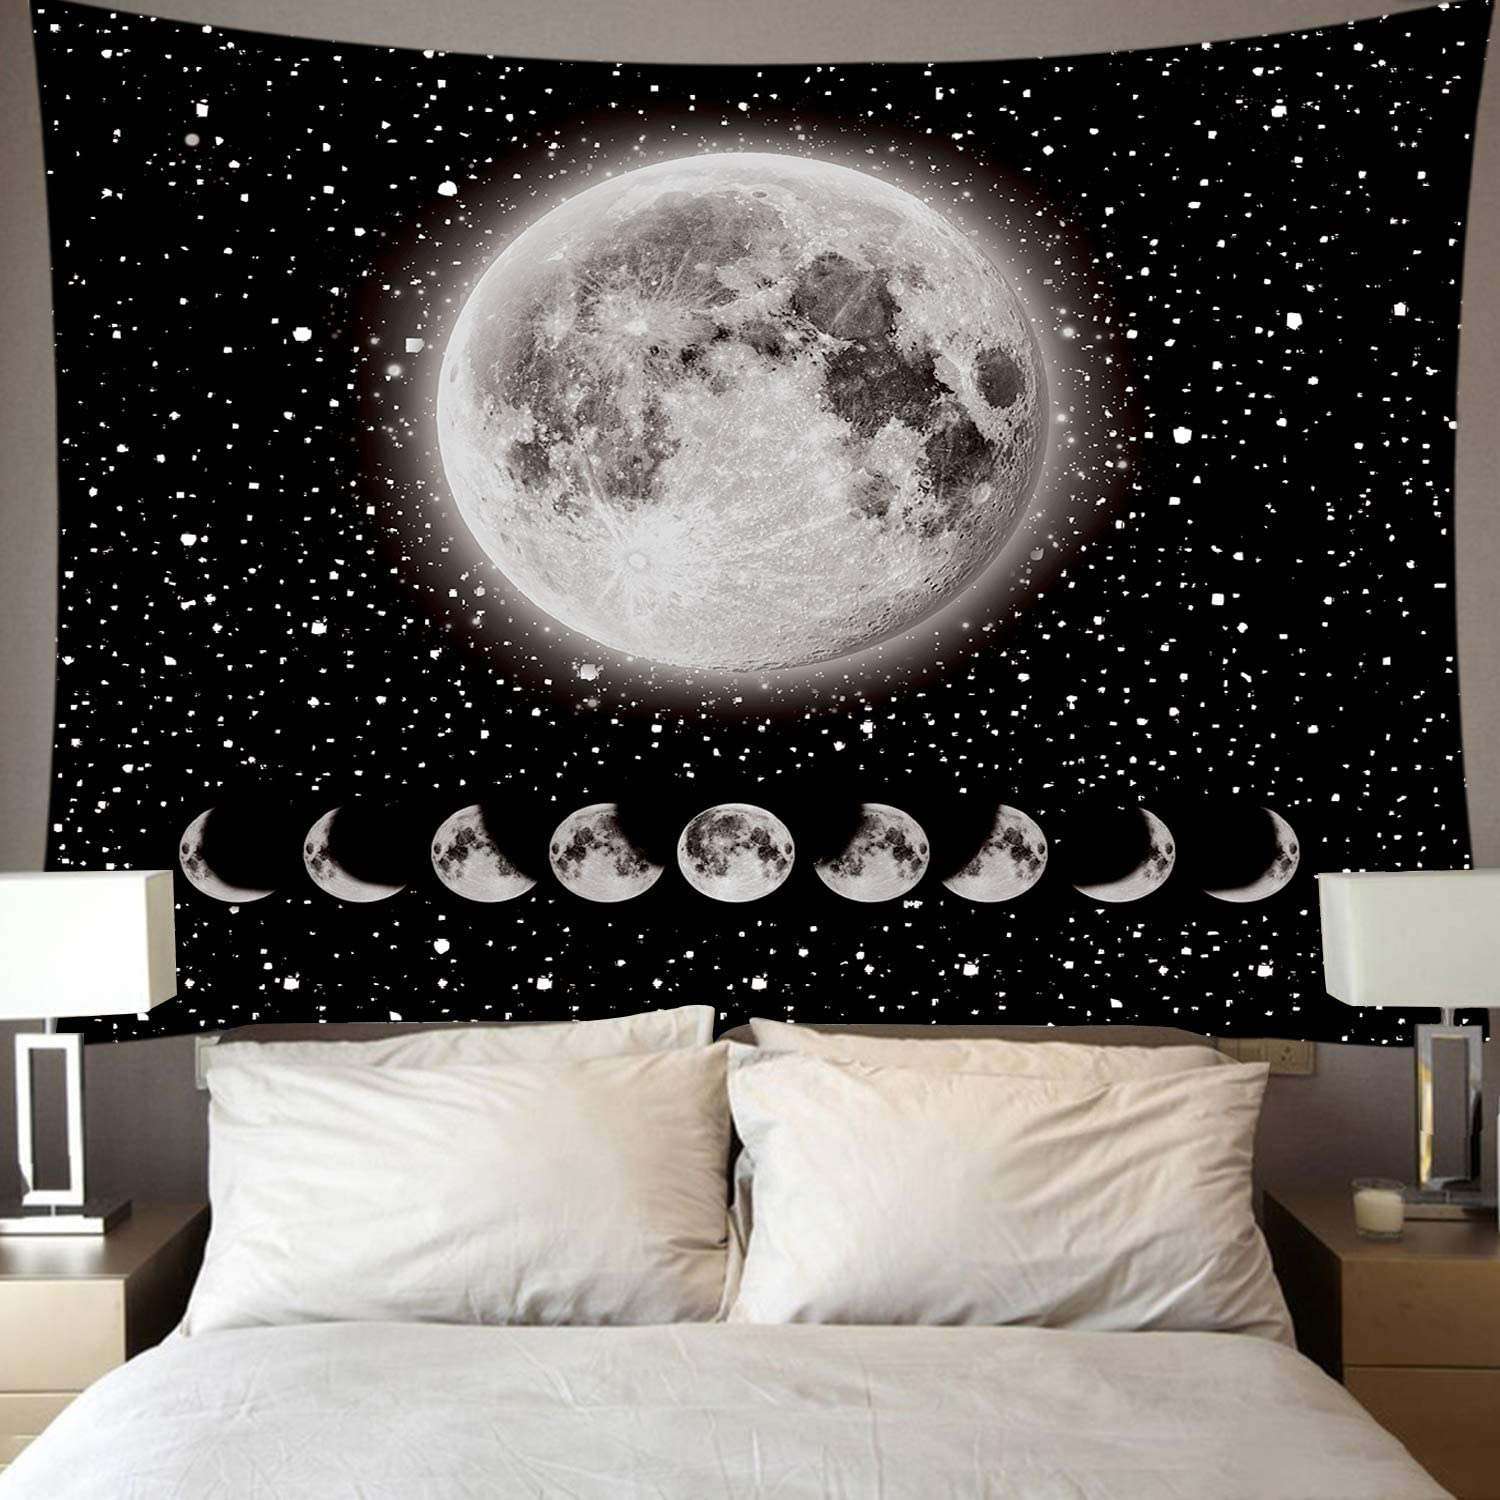 Moon Tapestry,Rarebit Lunar Eclipse Tapestry Universe Stars Space TapestryBlack and WhiteTapestry Starry Night Tapestry Wall Hanging for Bedroom Living Room Decor(51.2